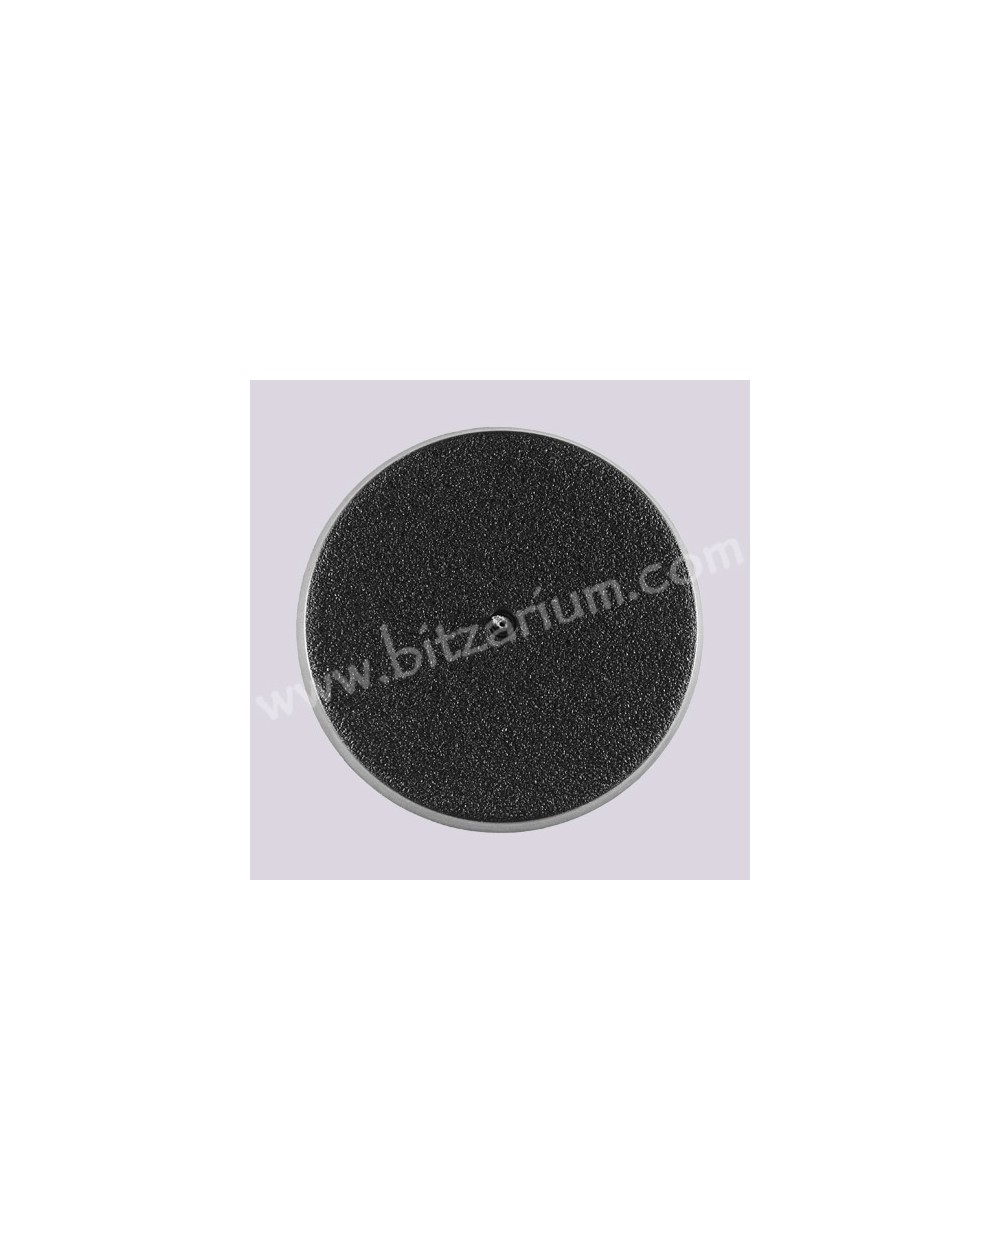 50mm solid round Base